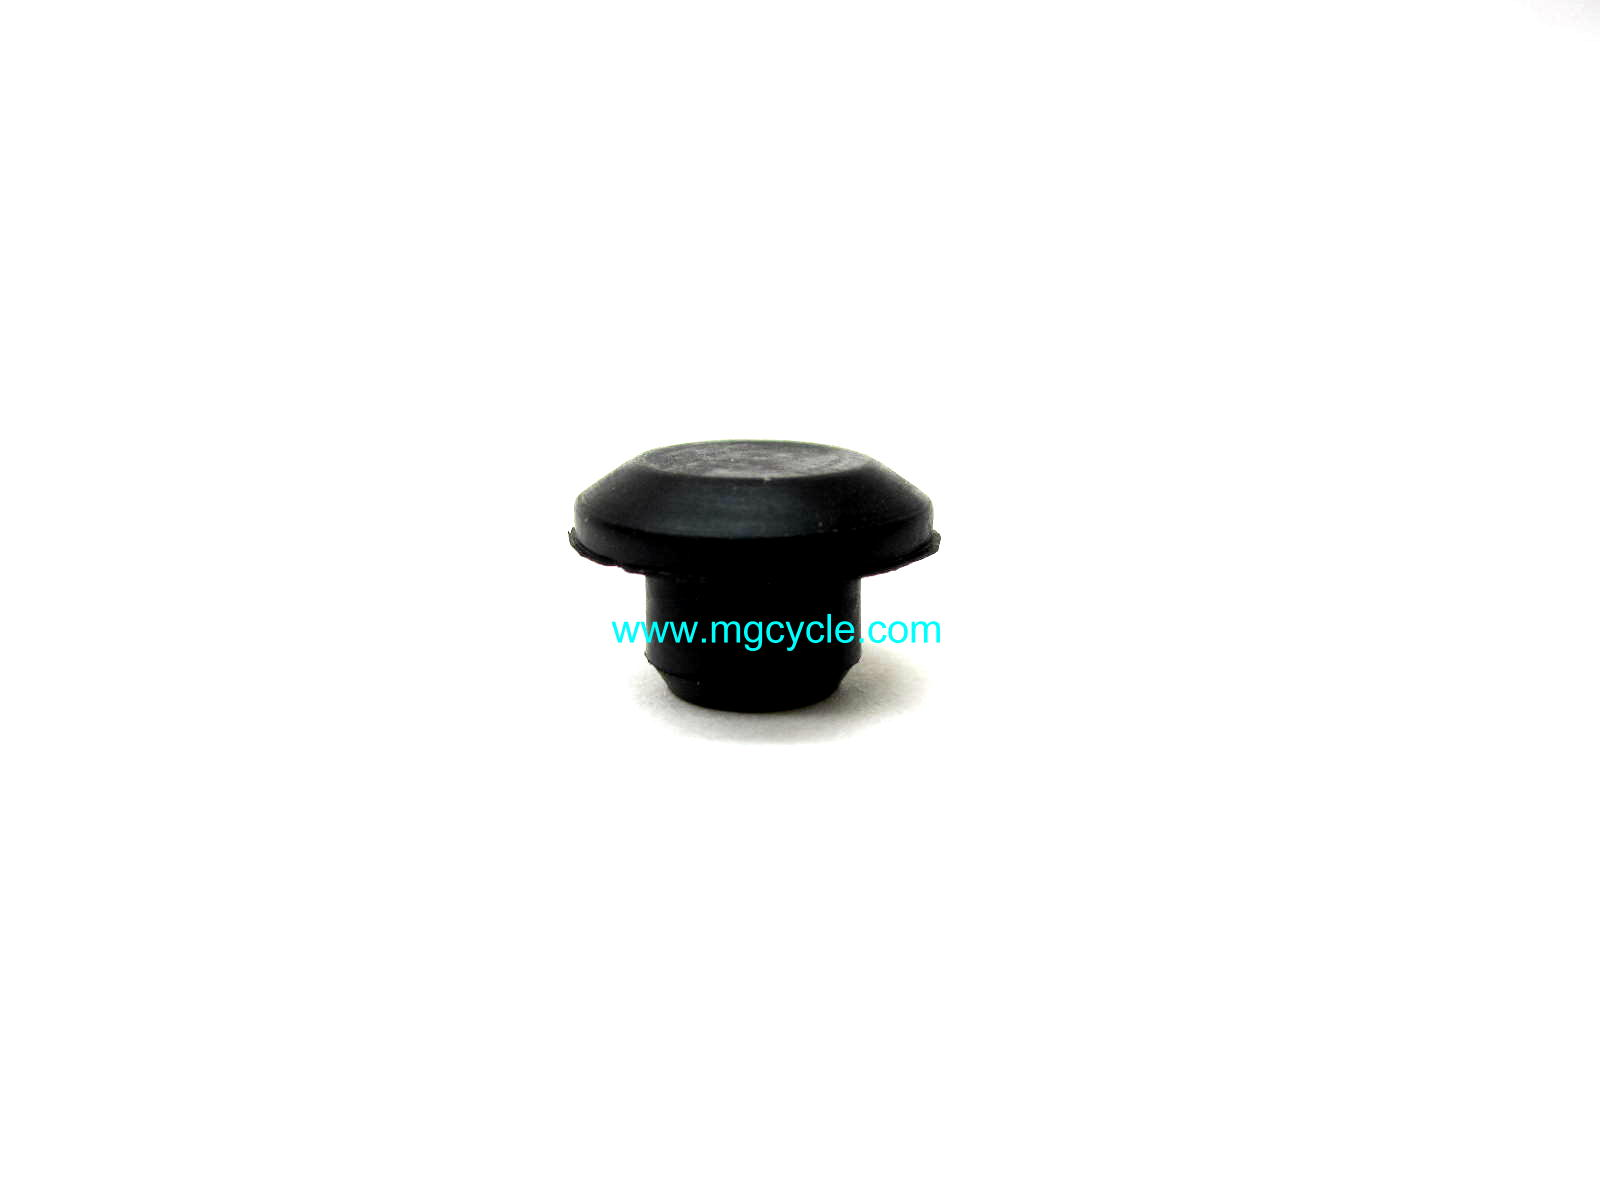 Rubber plug, head bolt small blocks, allen fill plug GU93180245